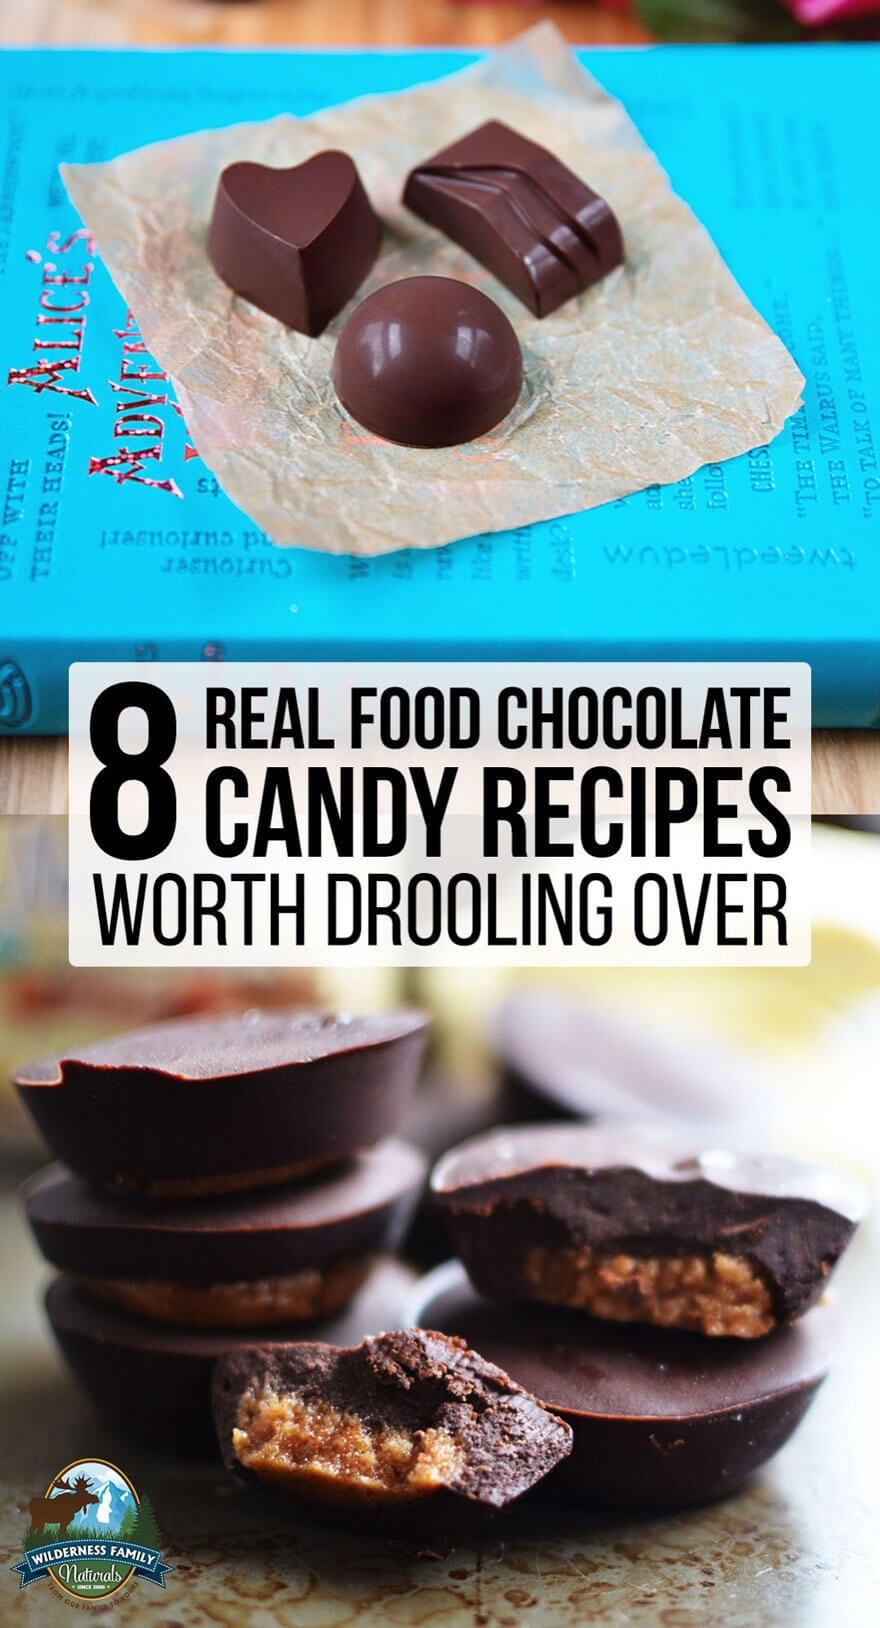 "8 Real Food Chocolate Candy Recipes Worth Drooling Over | Charles Schultz wisely stated, ""All you need is love. But a little chocolate now and then doesn't hurt."" The ingredients in these real food chocolate candies won't make you squirm because they're all REAL: real raw cacao, real cacao butter, real fruit, real nuts, and real whole sweeteners! 